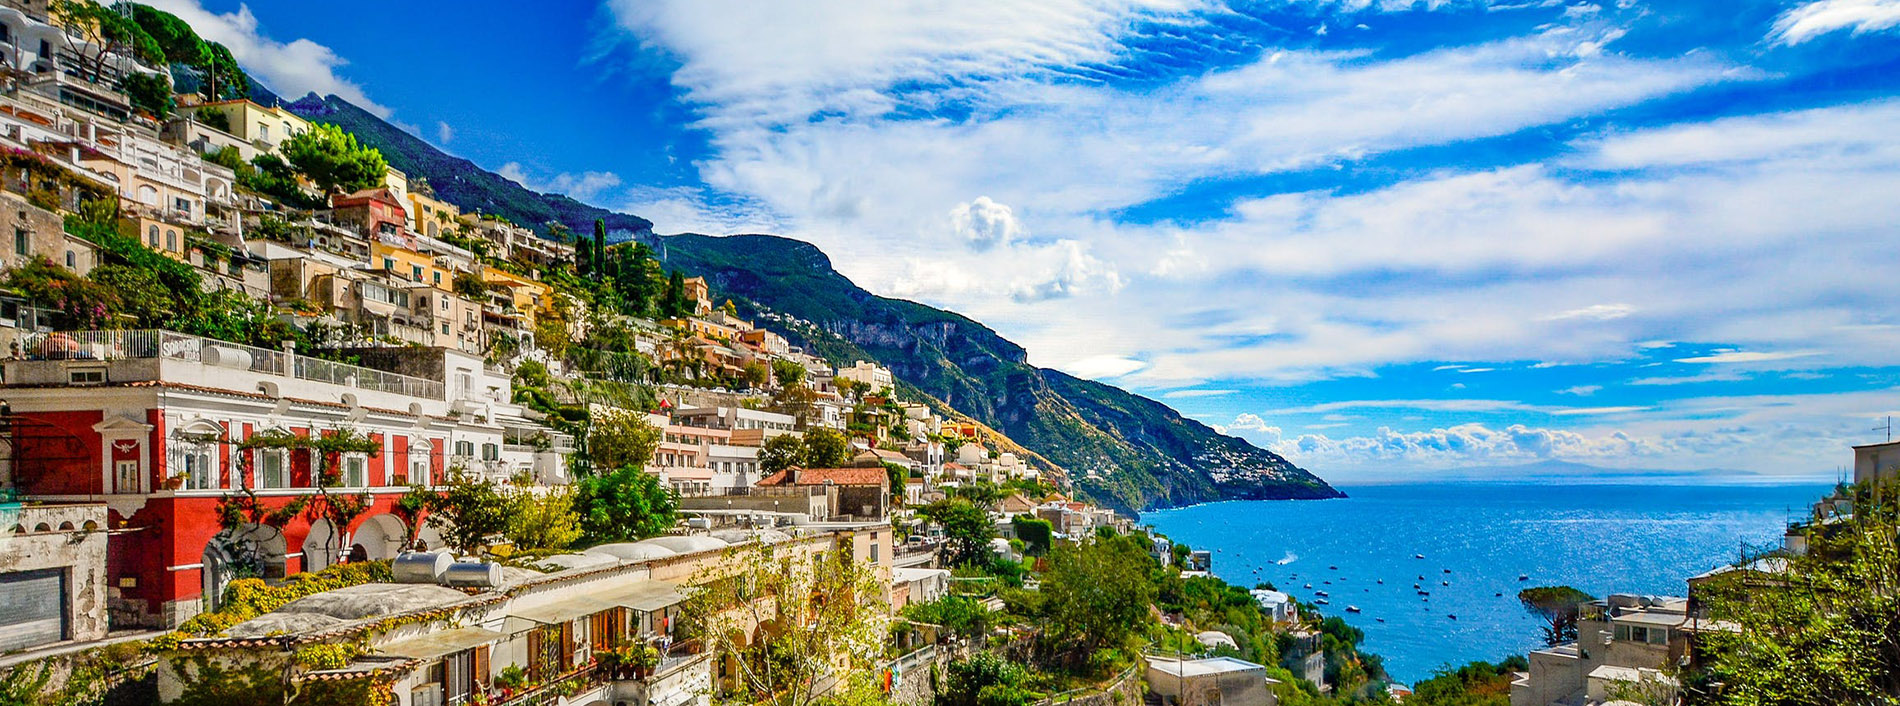 Amalfi Coast seen from a luxury Mediterranean cruise